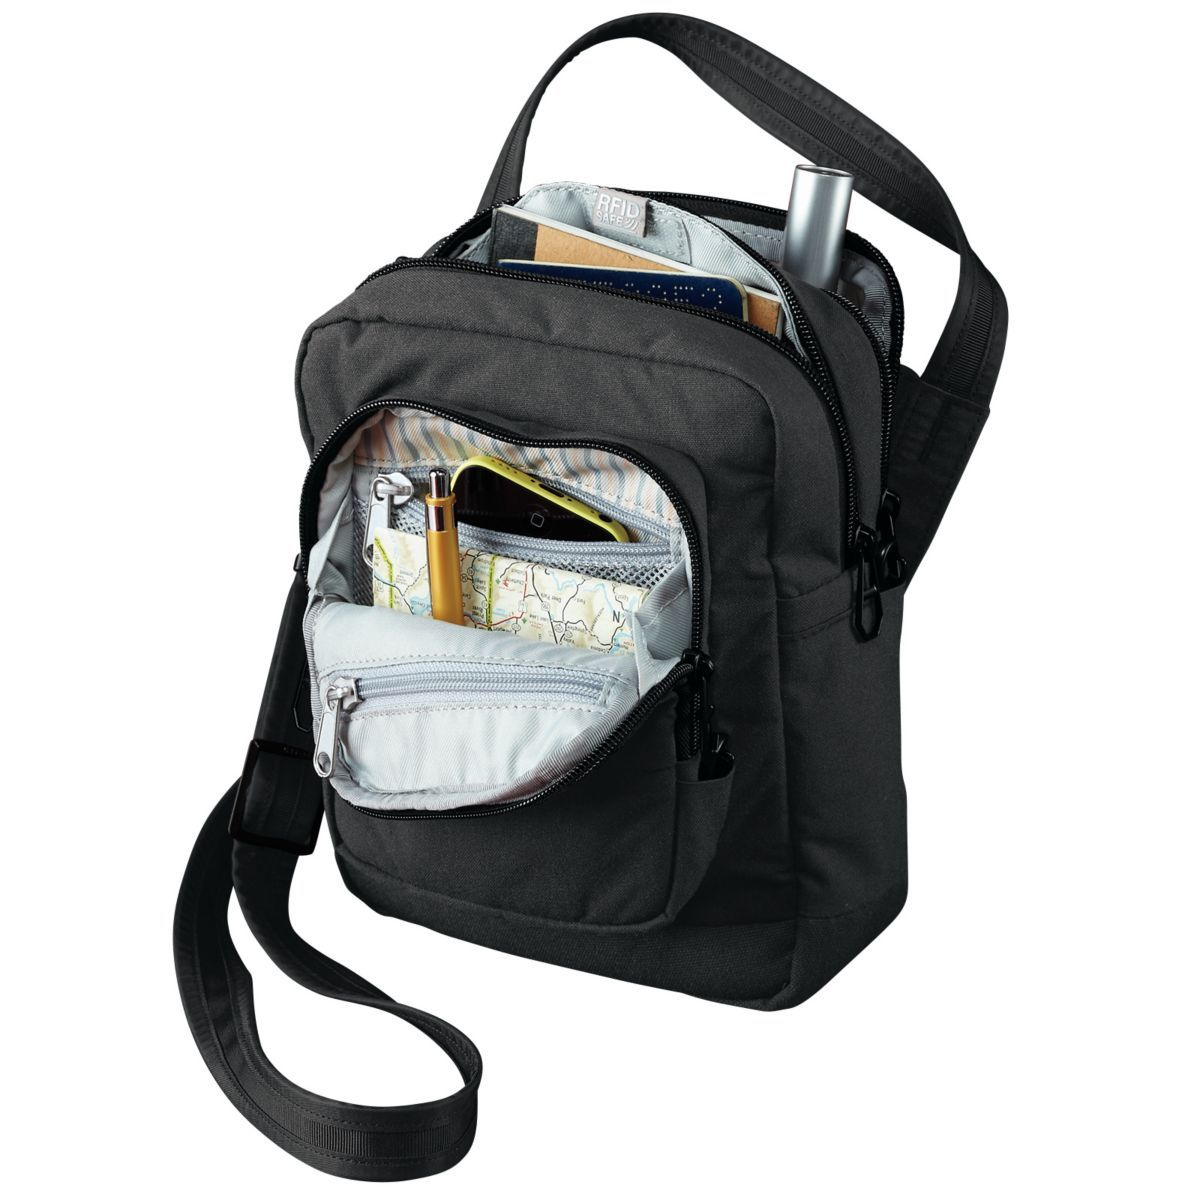 Pacsafe Citysafe LS75 RFID Crossbody Travel Bag  ba4b9b5b25b83